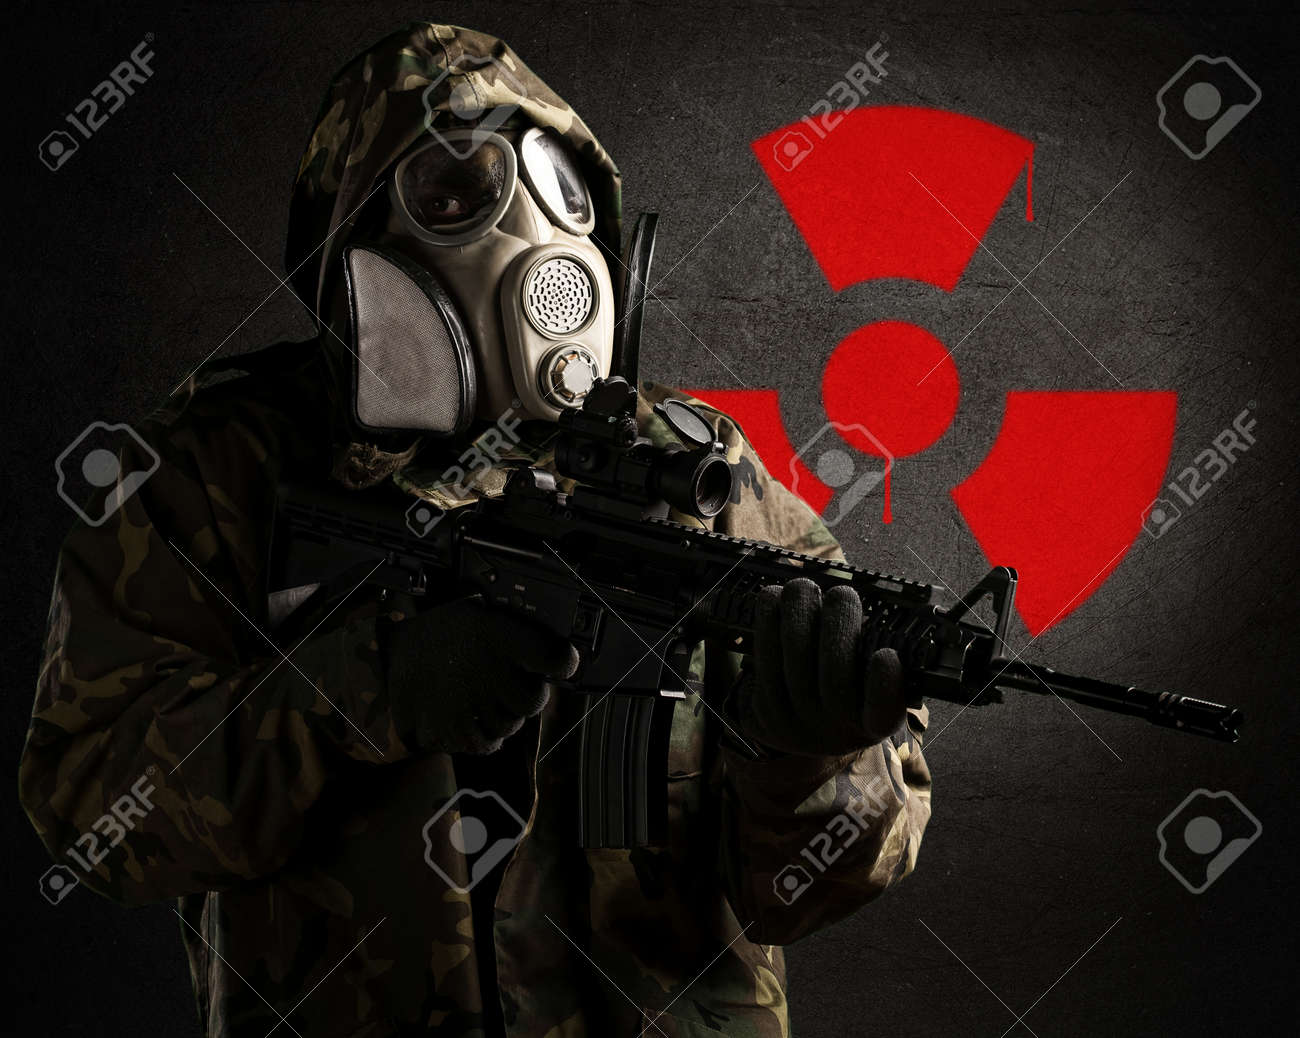 armed soldier wearing a gas mask against a concrete wall with red radioactive symbol Stock Photo - 10369692